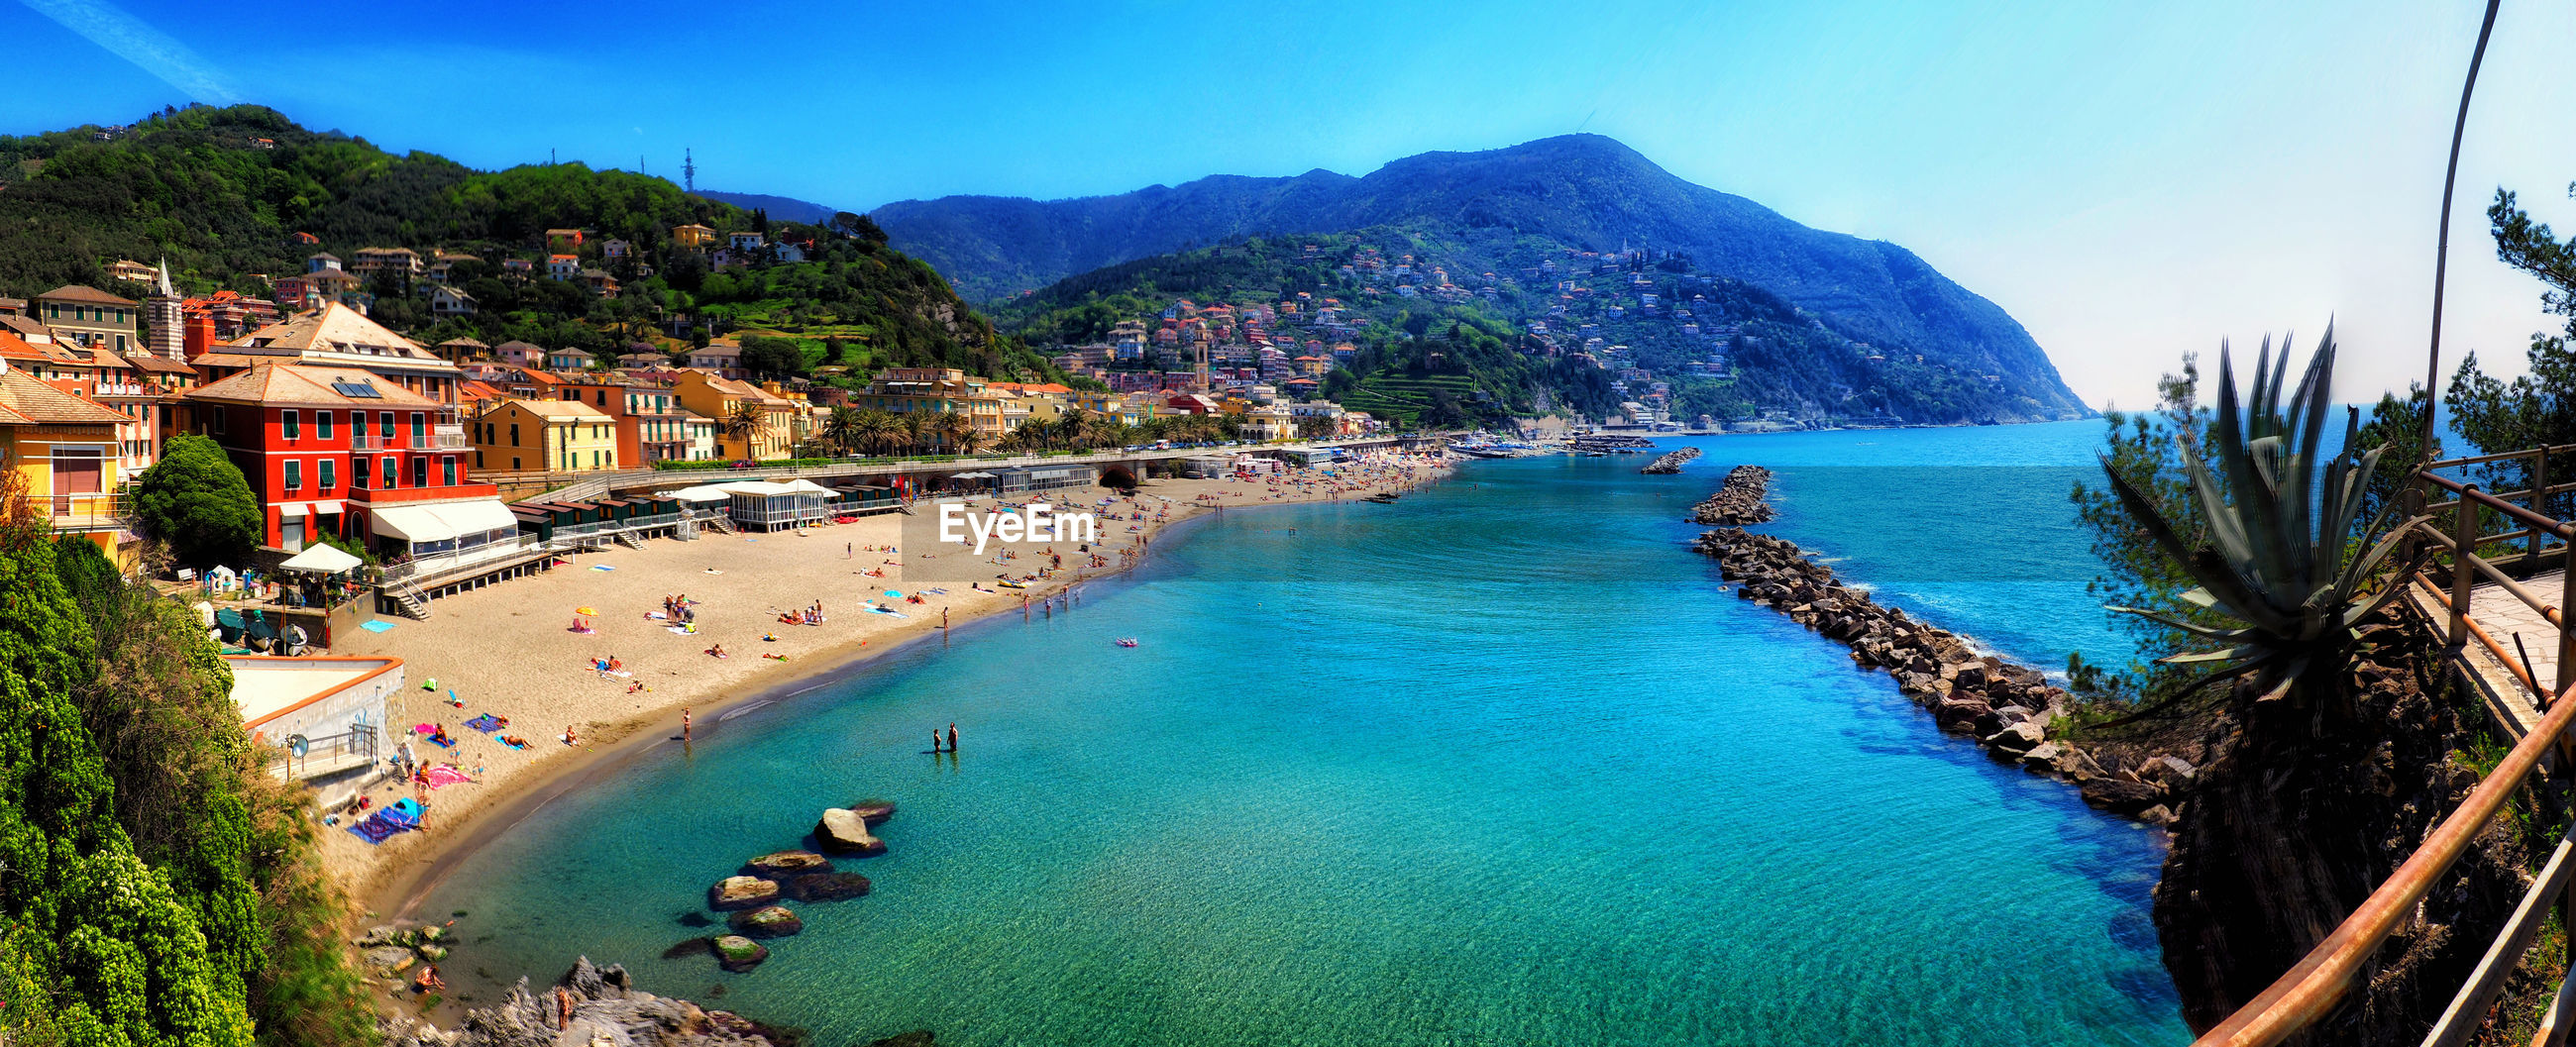 PANORAMIC VIEW OF SEA AND MOUNTAINS AGAINST BLUE SKY